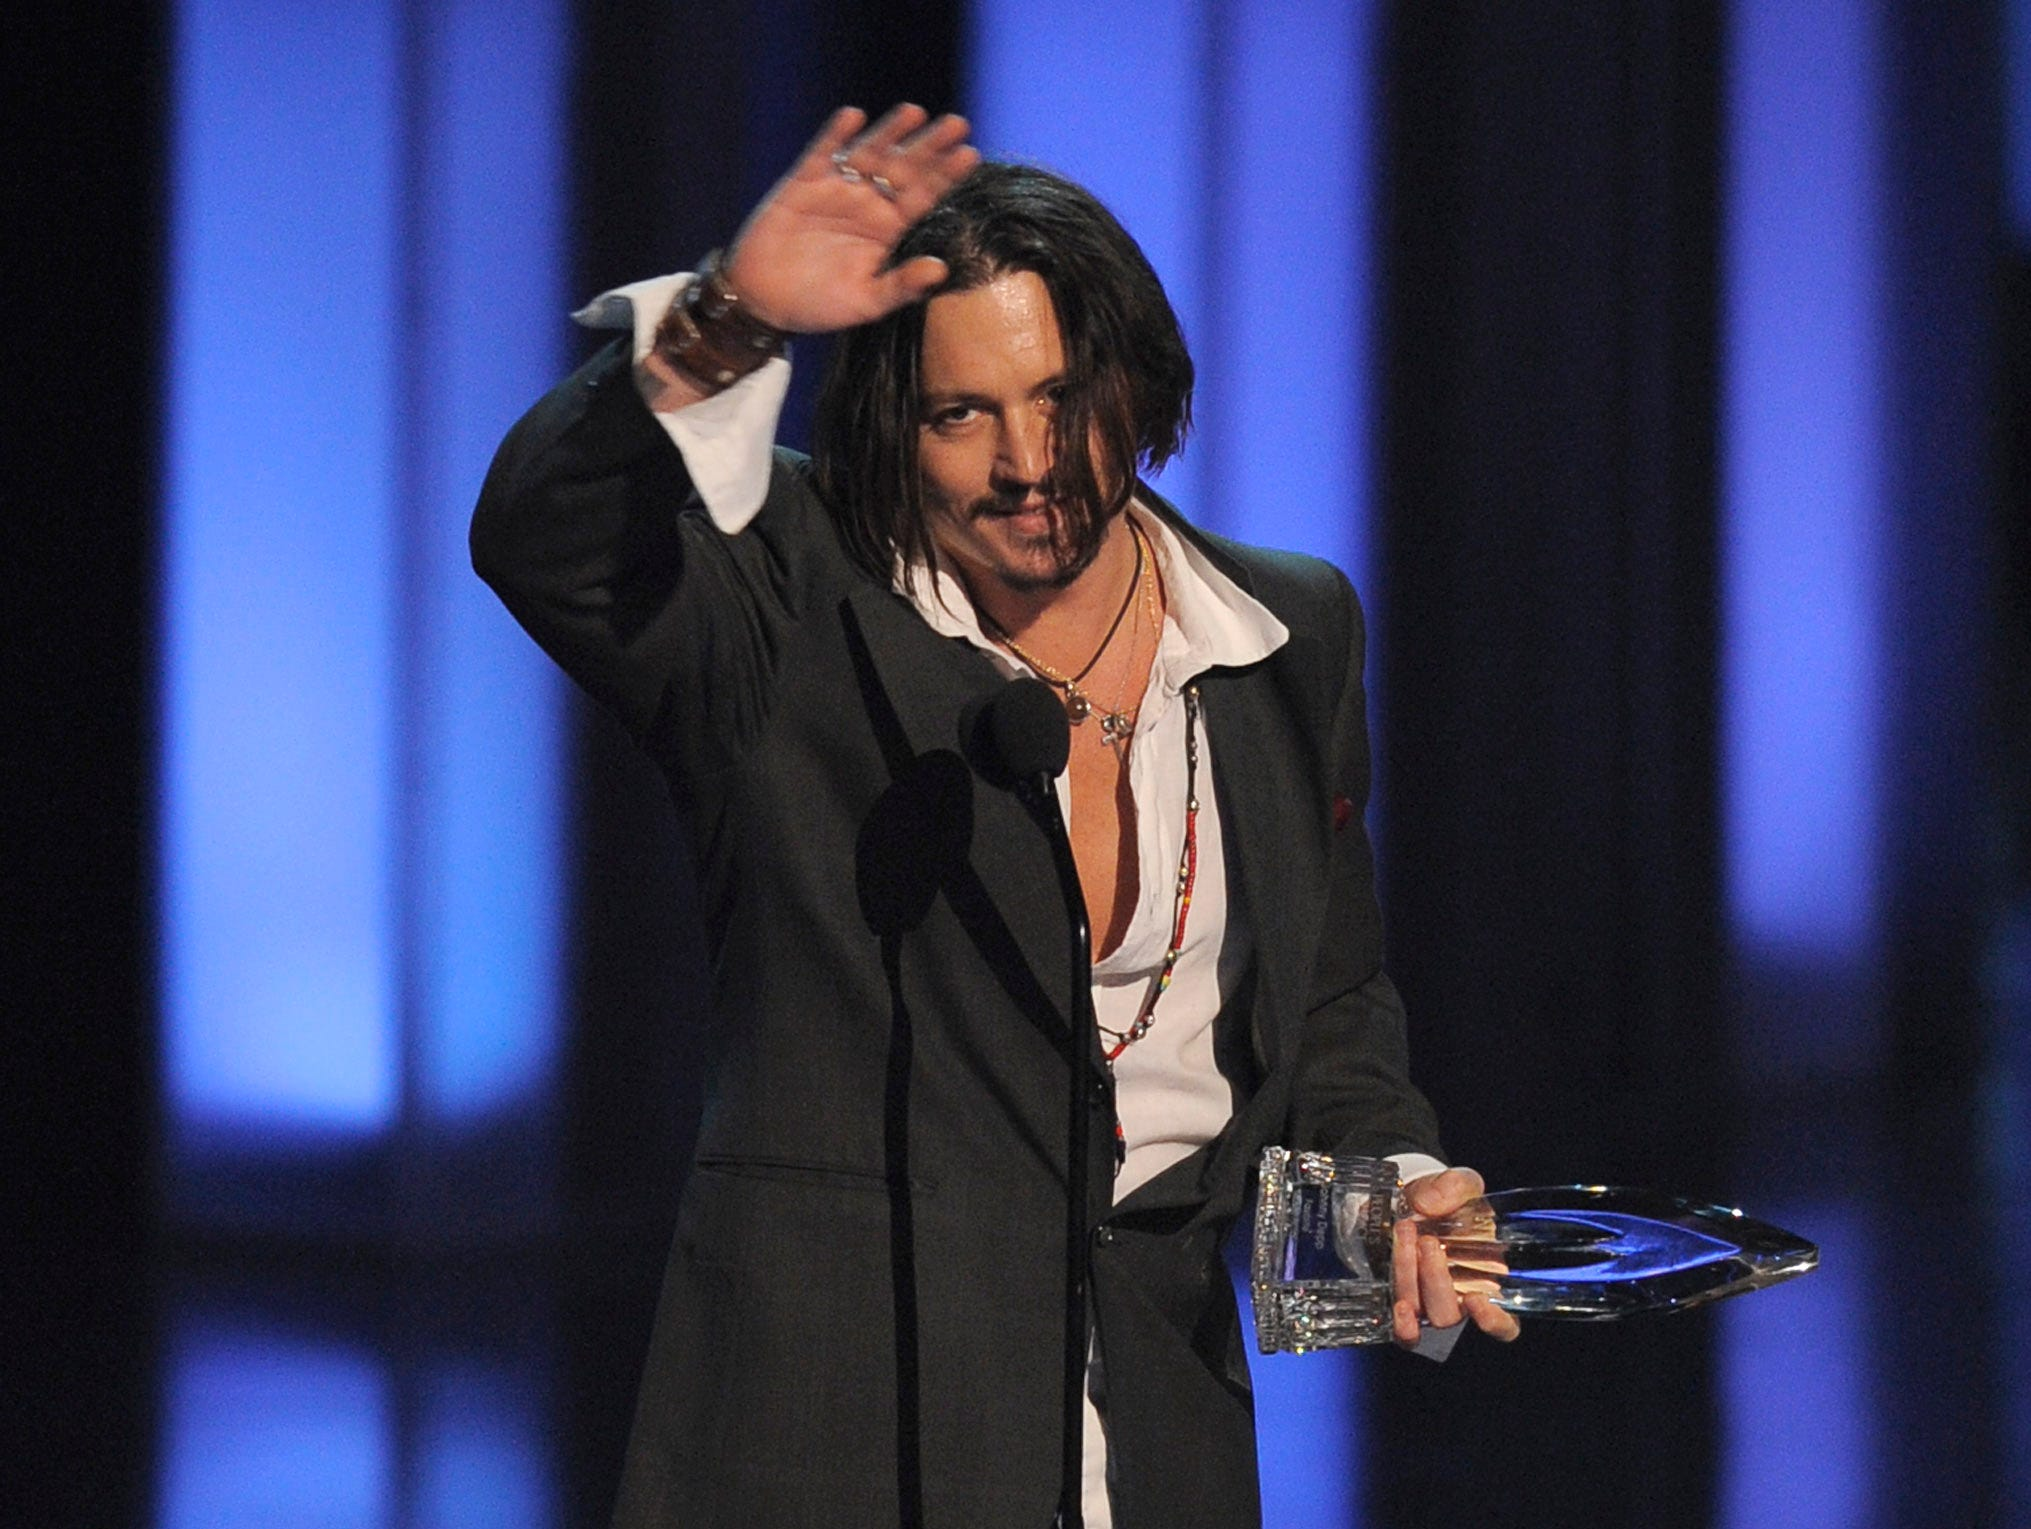 Johnny Depp accepts the award for favorite movie actor of the decade at the People's Choice Awards on Wednesday Jan. 6, 2010, in Los Angeles. (AP Photo/Chris Pizzello) ORG XMIT: CADC165